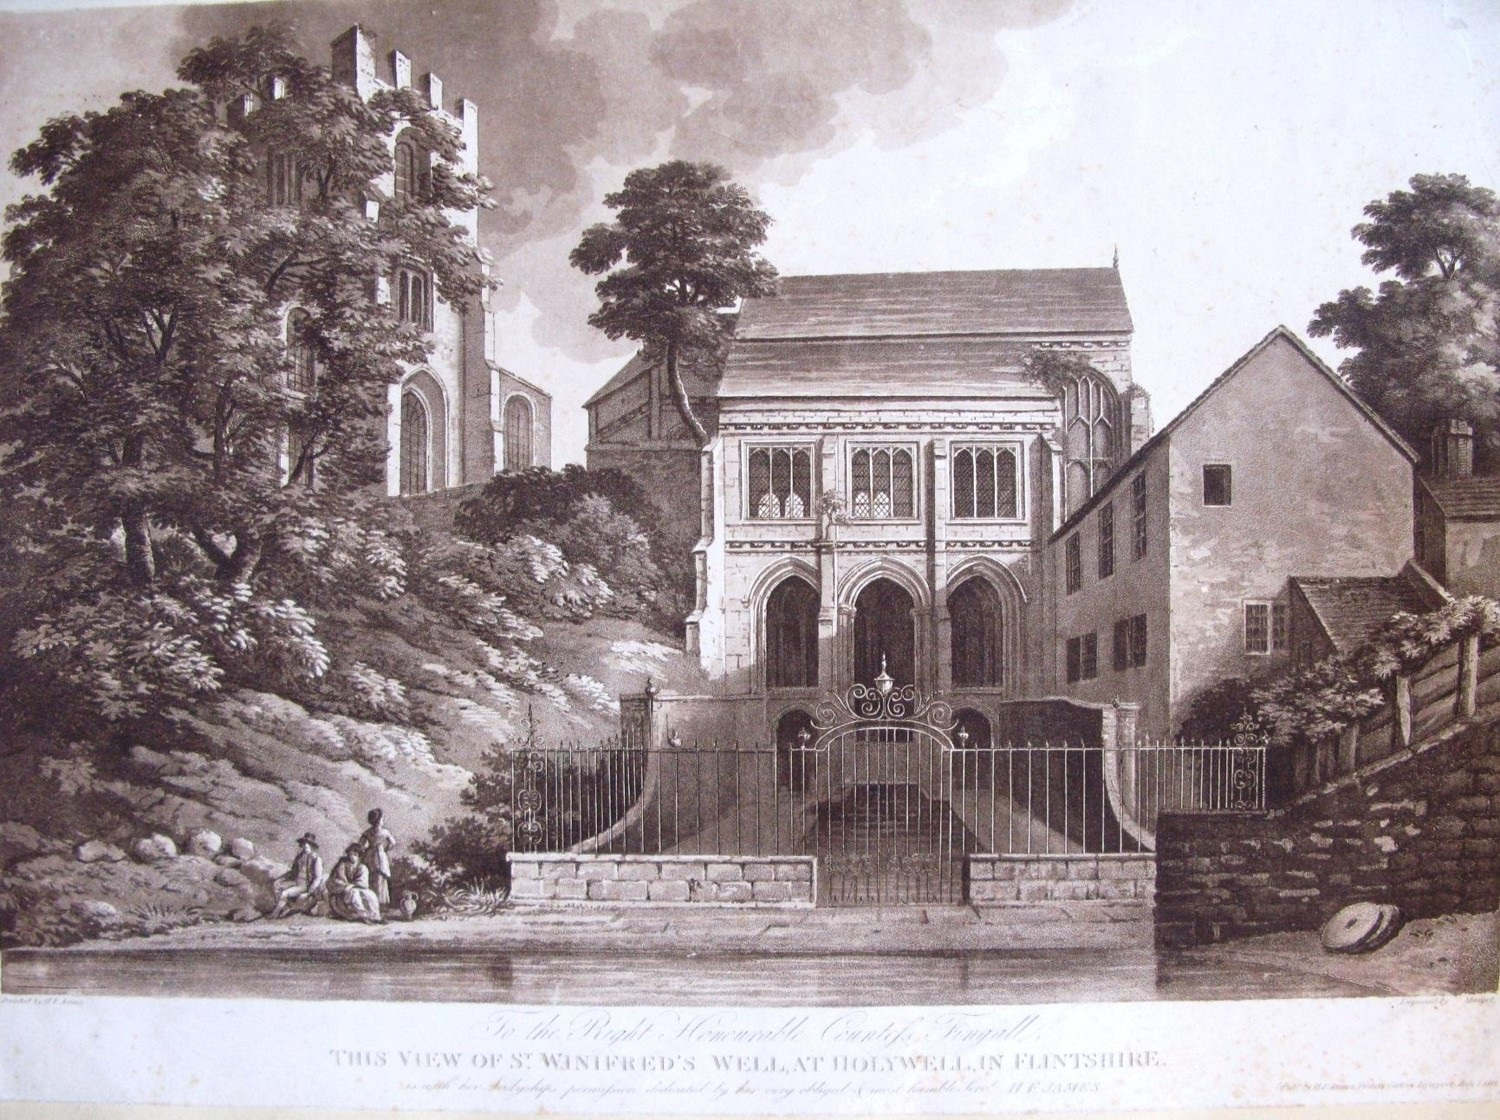 An engraving of a building set behind railings. Between the railings and the building is   rectangular pool. To its left is a church-like building obscured by trees. There is a group of three figures by a body of water at the bottom of the picture, two are seated while one stands and looks up to the main building